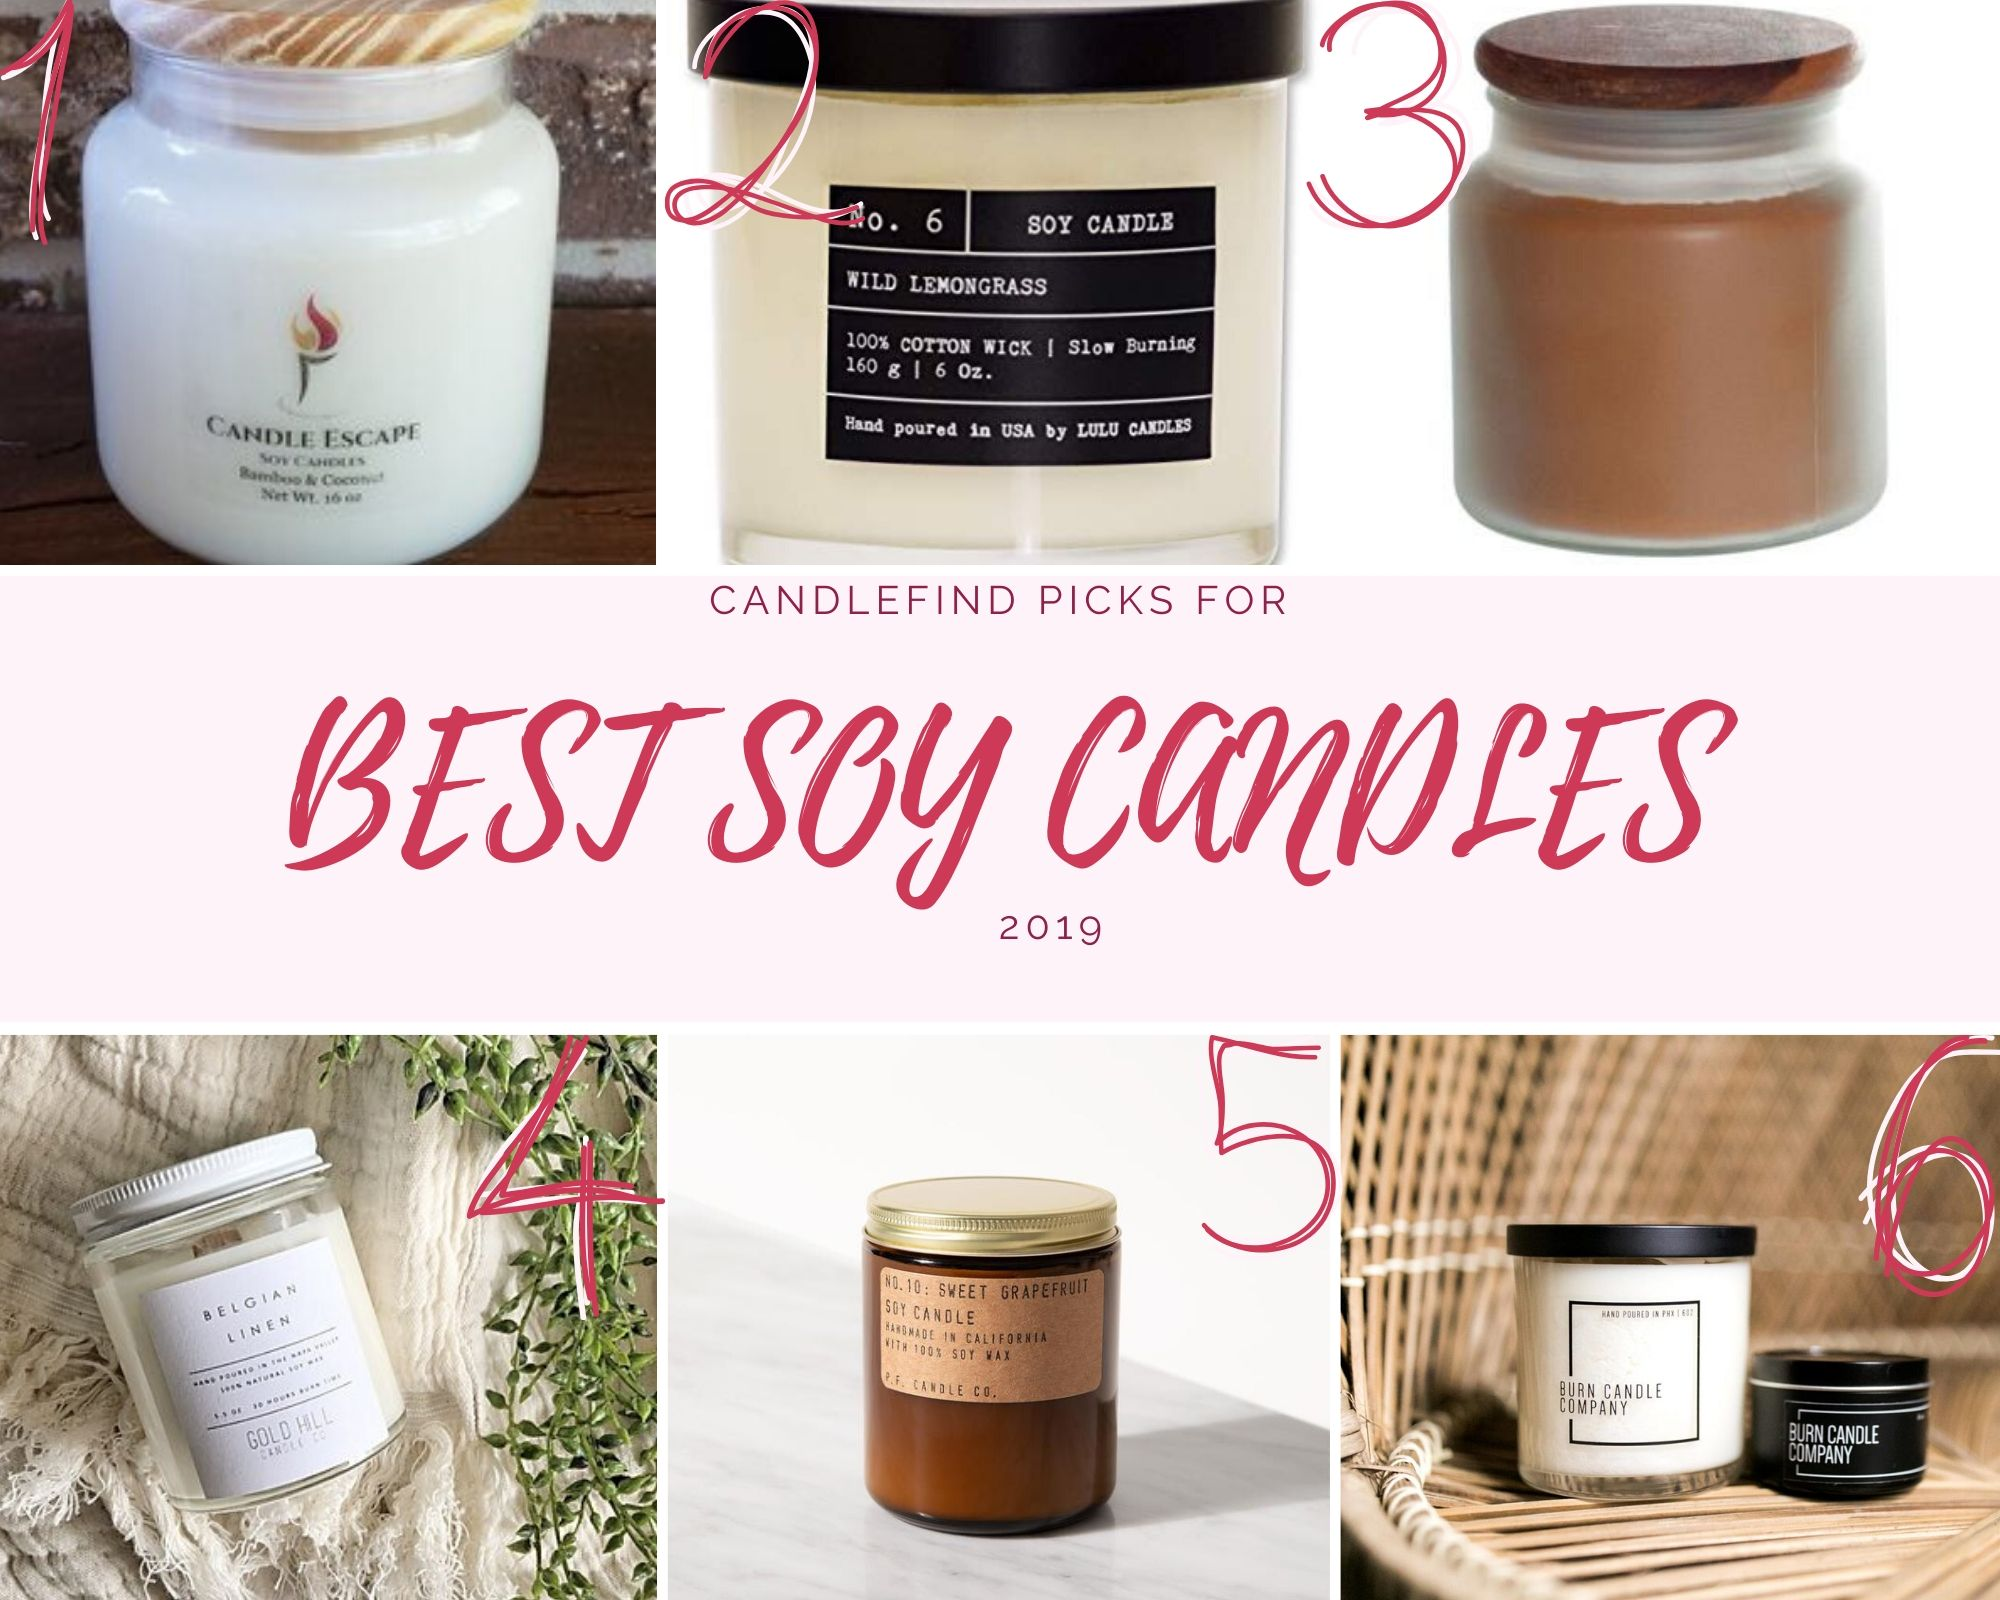 Best Soy Candles 2019